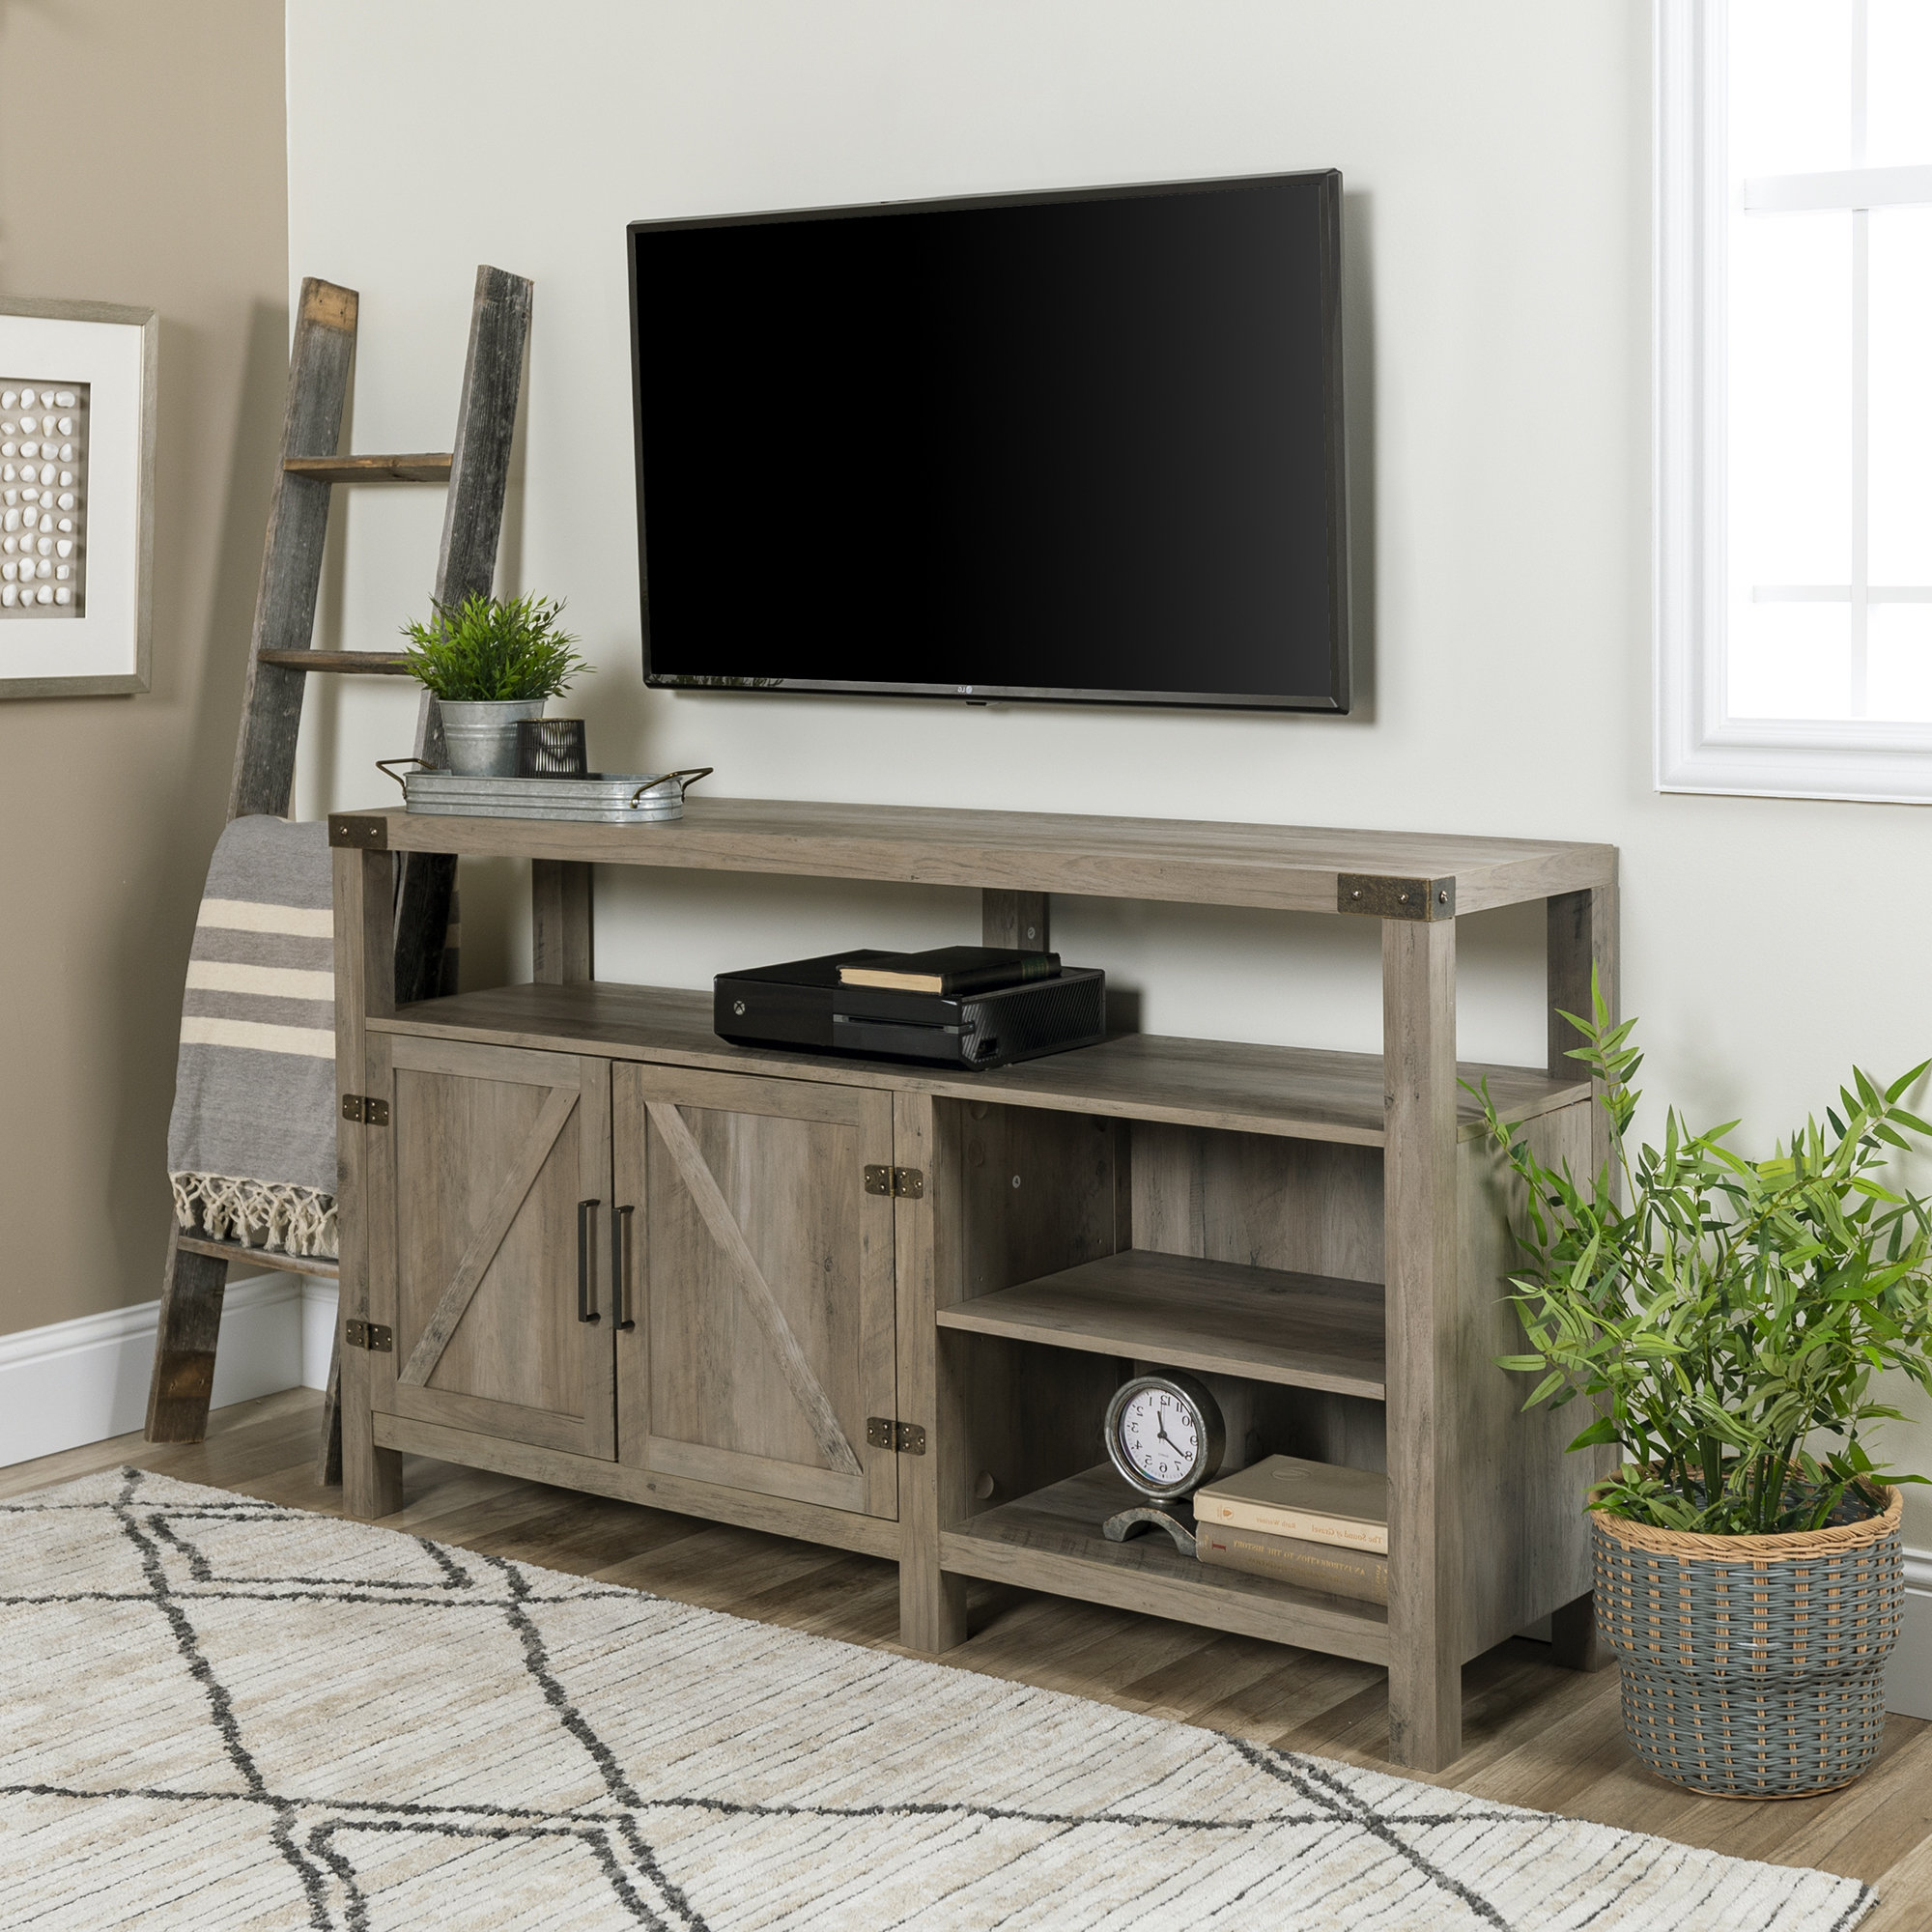 Tall Tv Stands You'll Love | Wayfair With Regard To Edwin Black 64 Inch Tv Stands (View 18 of 20)